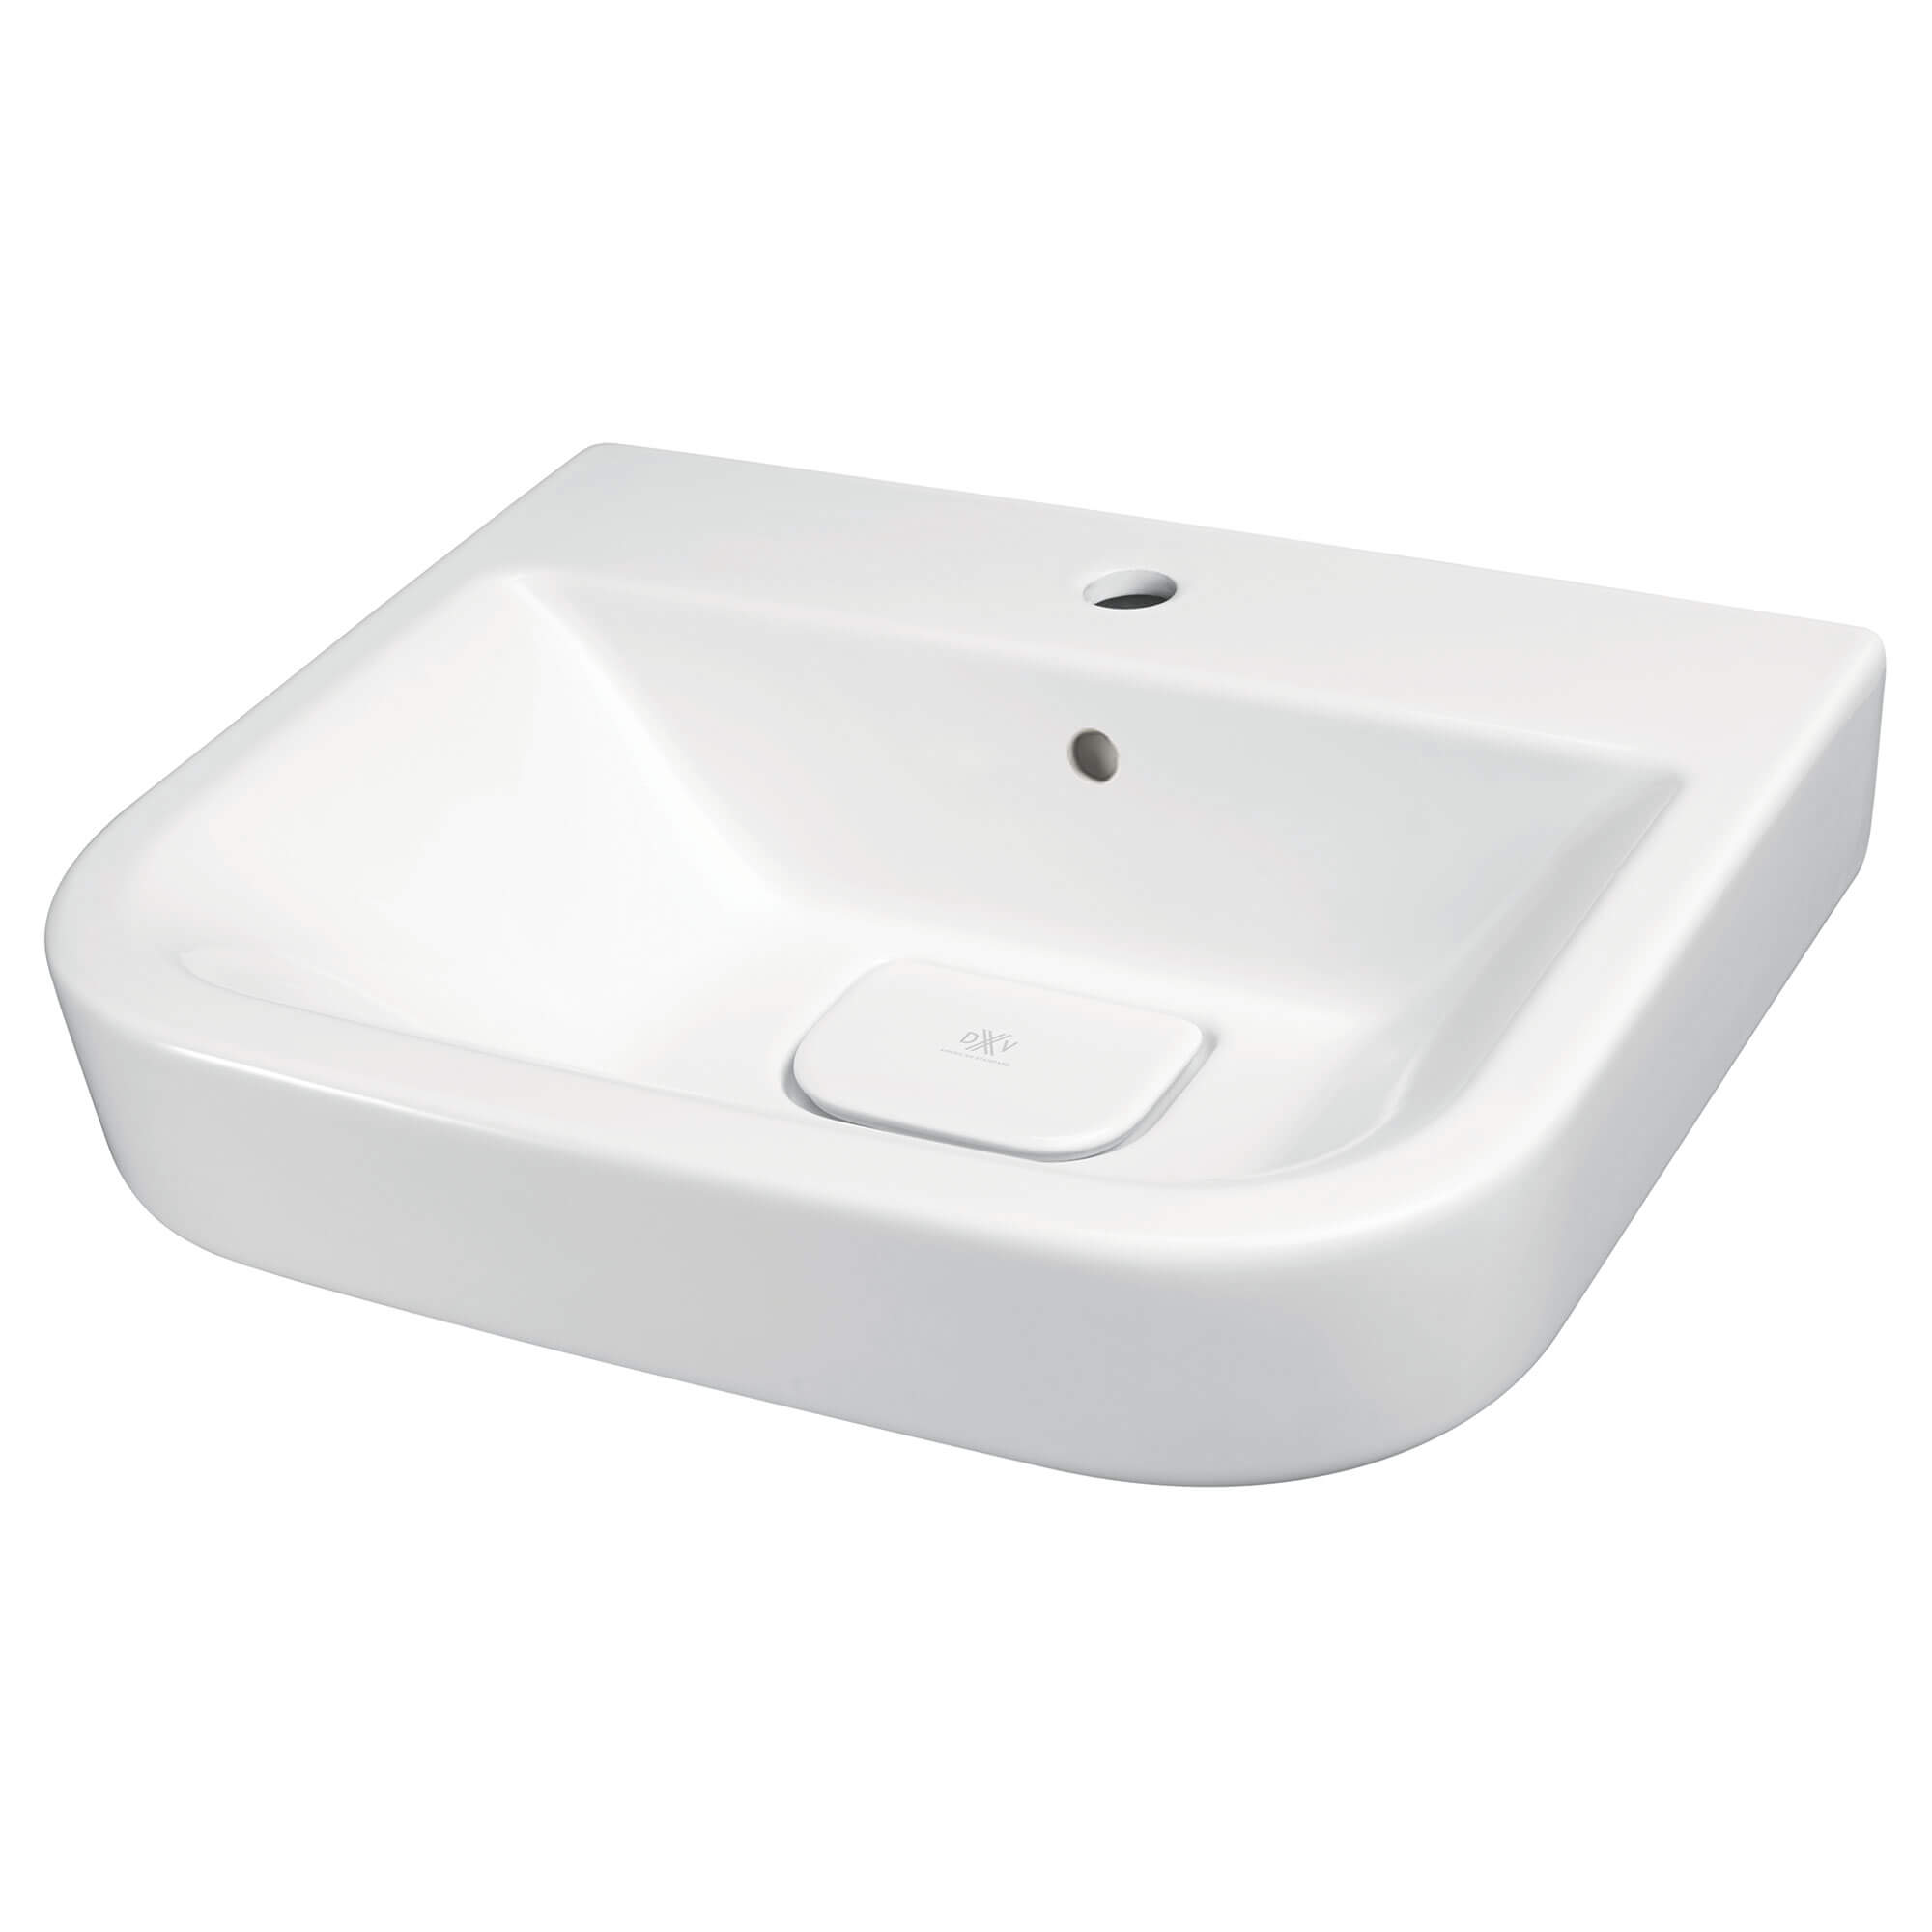 Equility 22-inch Single Hole Wall-Hung Bathroom Sink - Projects Model